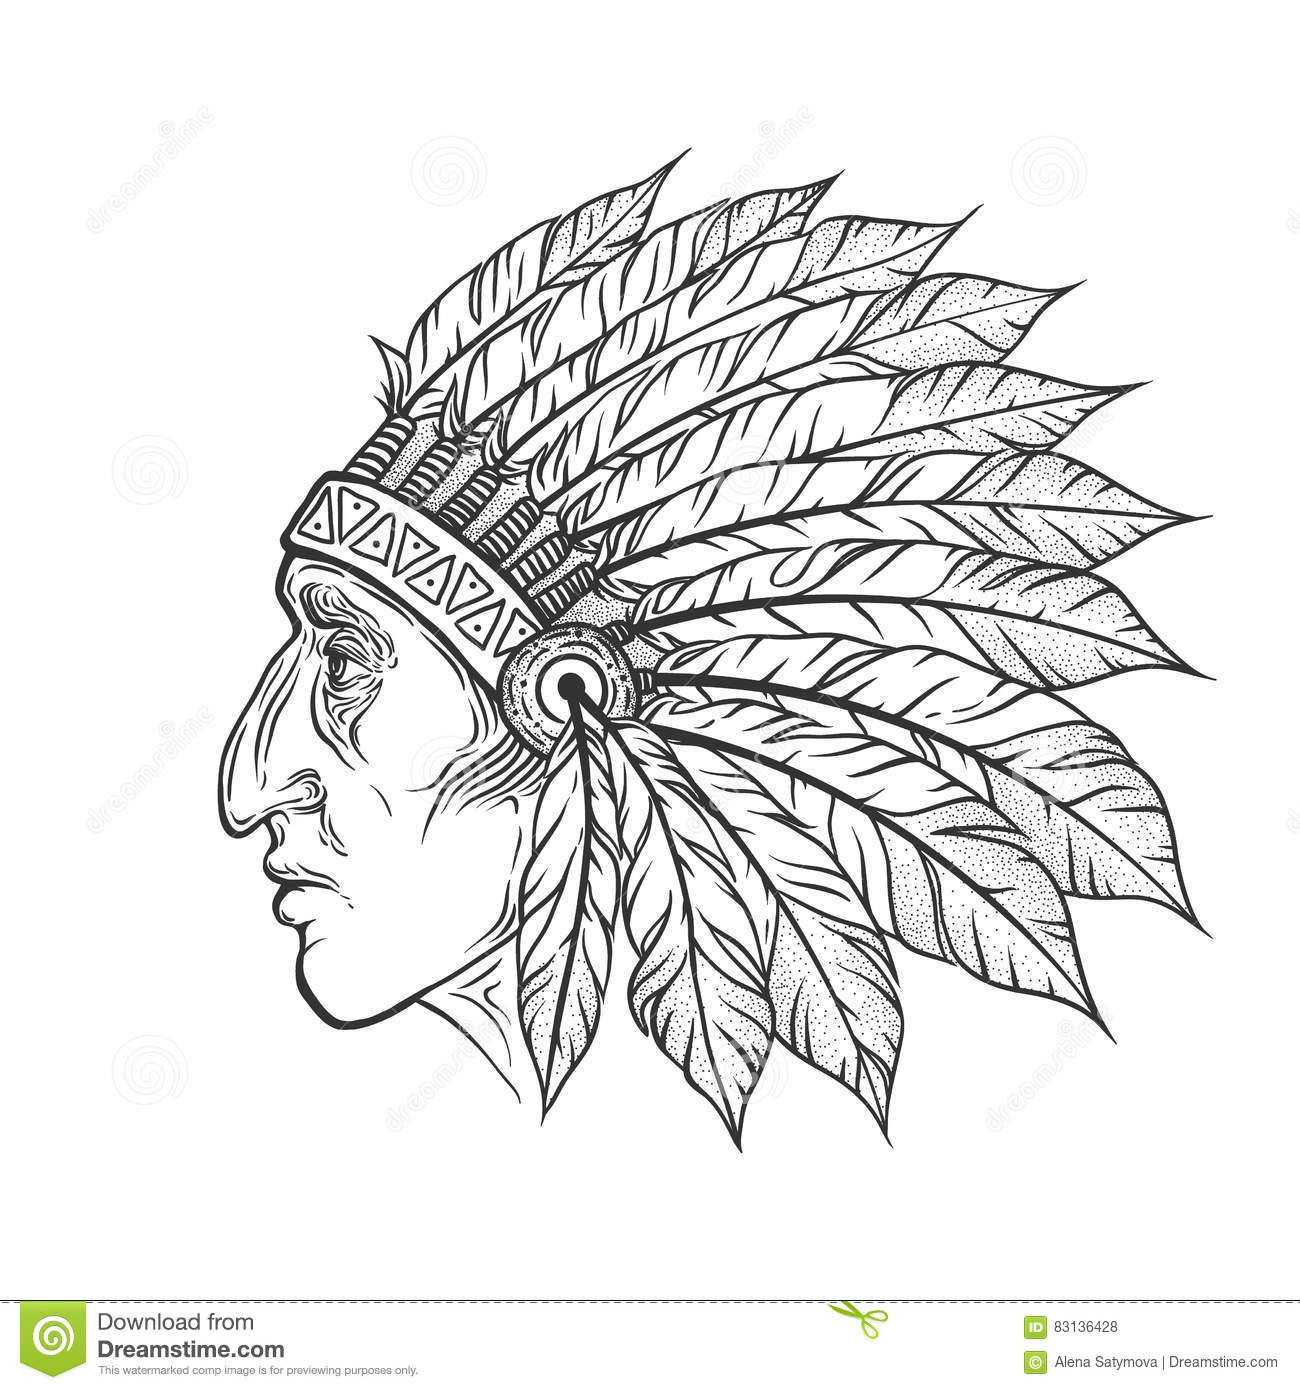 1ed2e4a8dd0a8 Native American Indian chief head profile. Vector vintage illustration.  Hand drawn style. Blackwork tattoo. Bohemian element